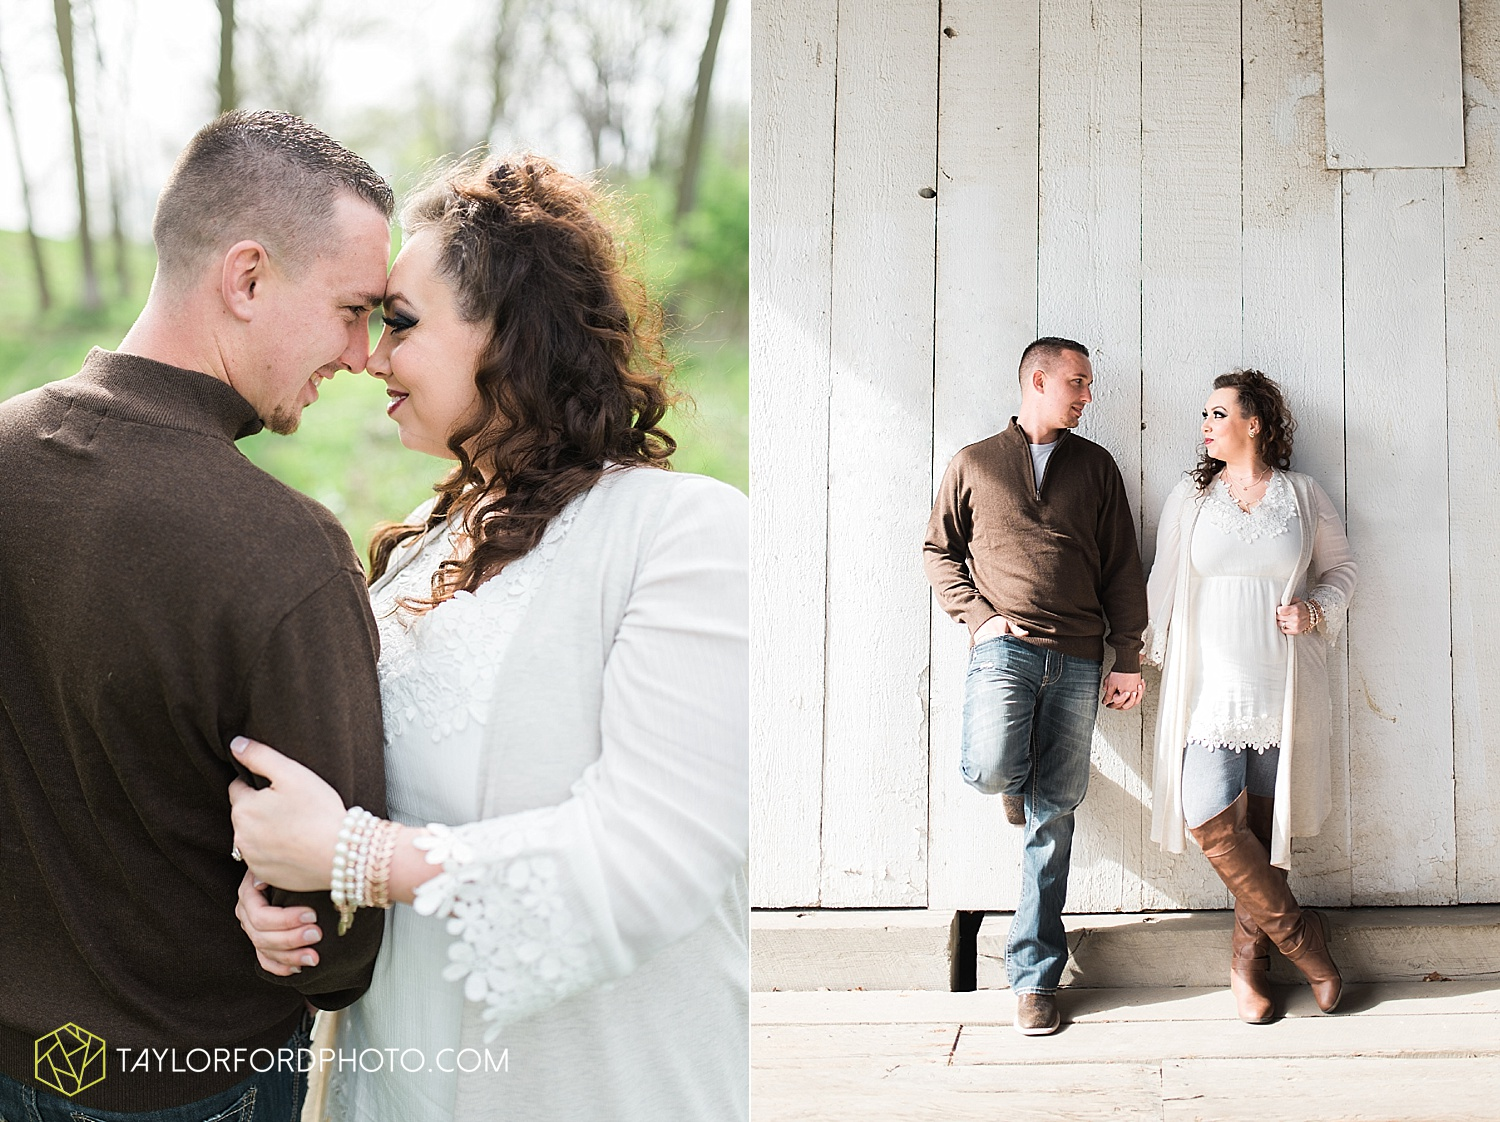 fort-wayne-indiana-engagement-wedding-photographer-taylor-ford-photography_1528.jpg